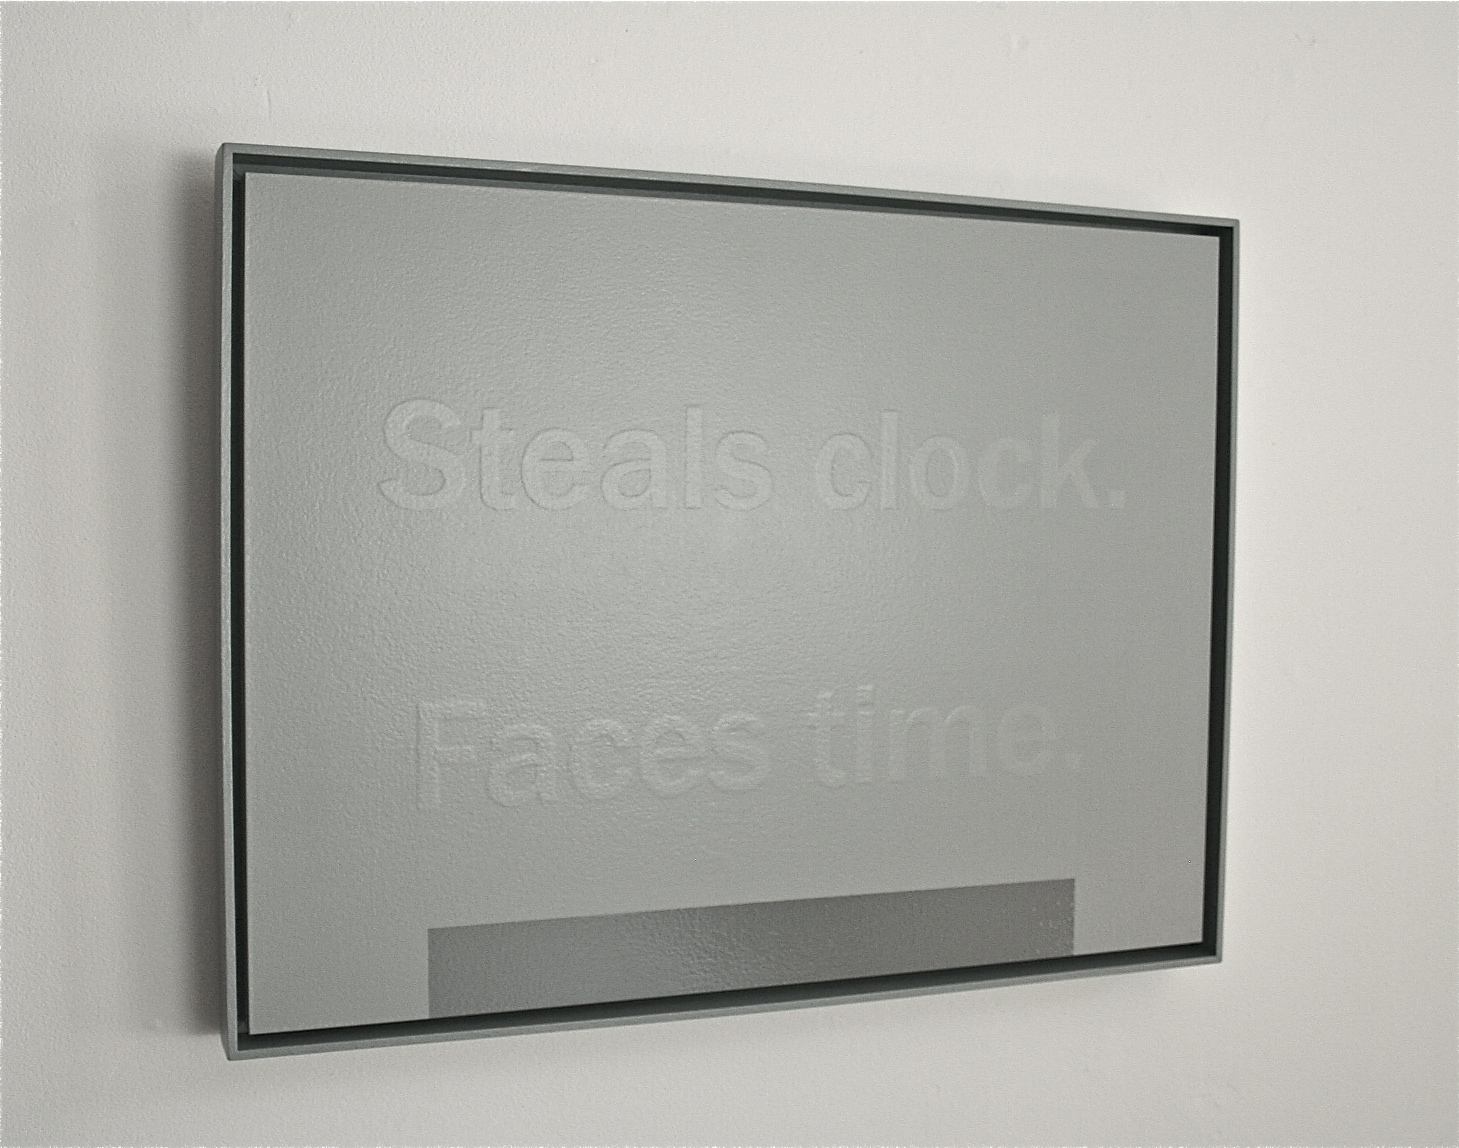 Patrick DeGuira, Steals Clock. Faces Time 2012